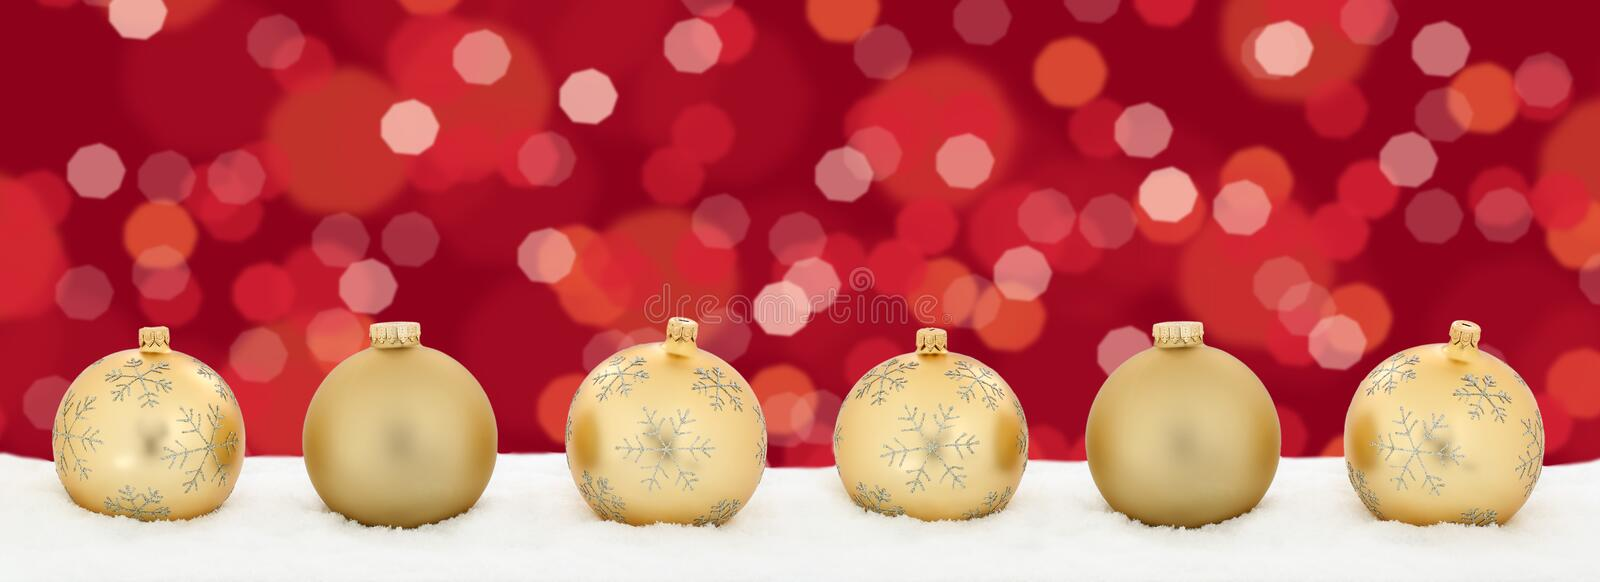 Christmas lights golden balls banner decoration background copys royalty free stock photos